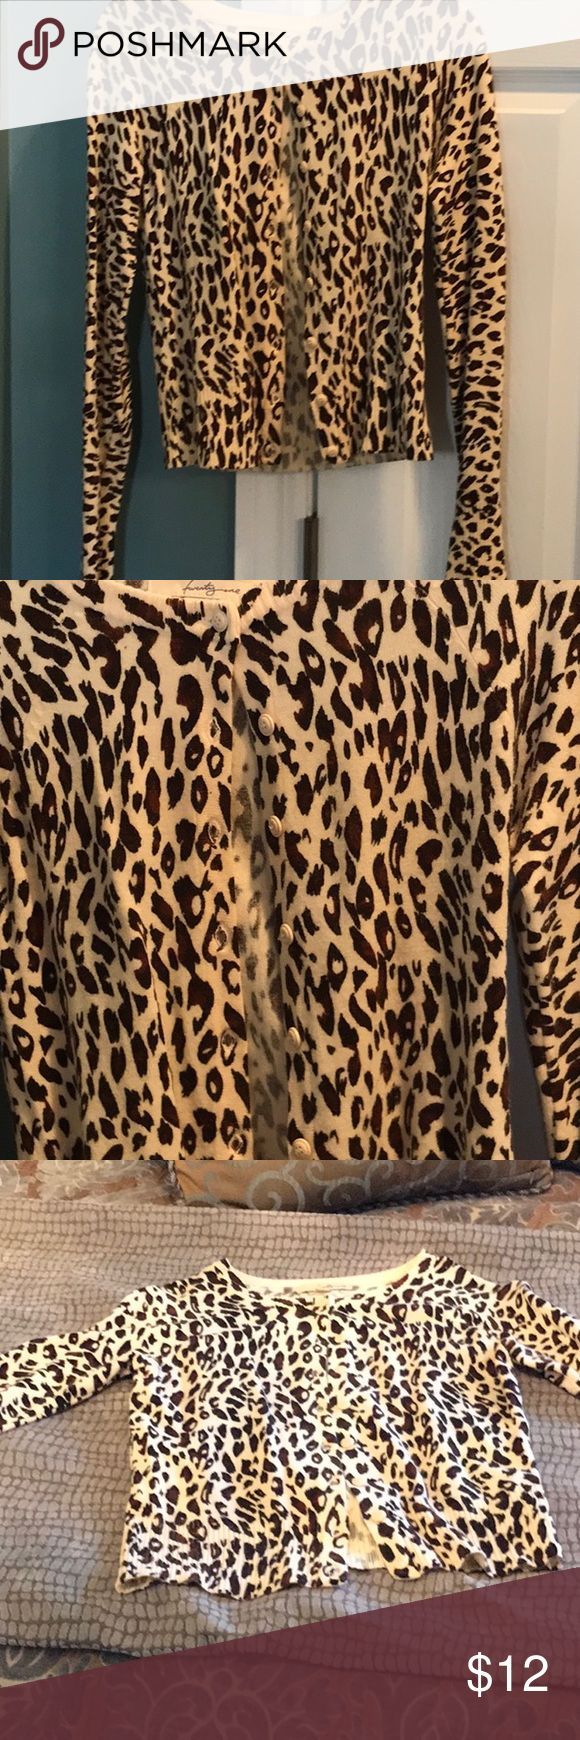 Leopard print cardigan size medium Excellent condition leopard print cardigan   Size medium. Sweaters Cardigans